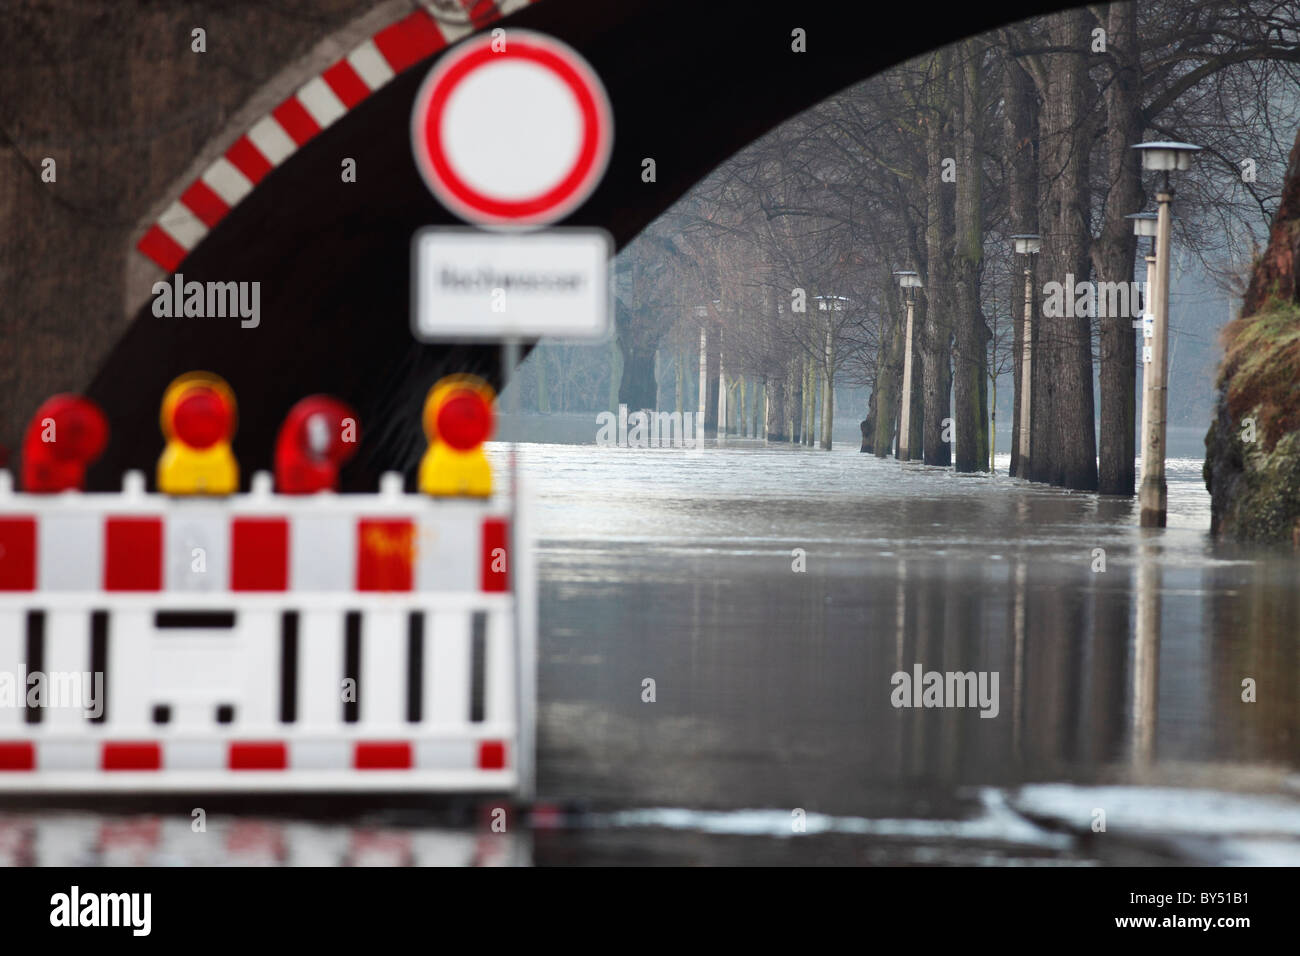 flooding of a road in Halle (Saale) 2013 - Stock Image